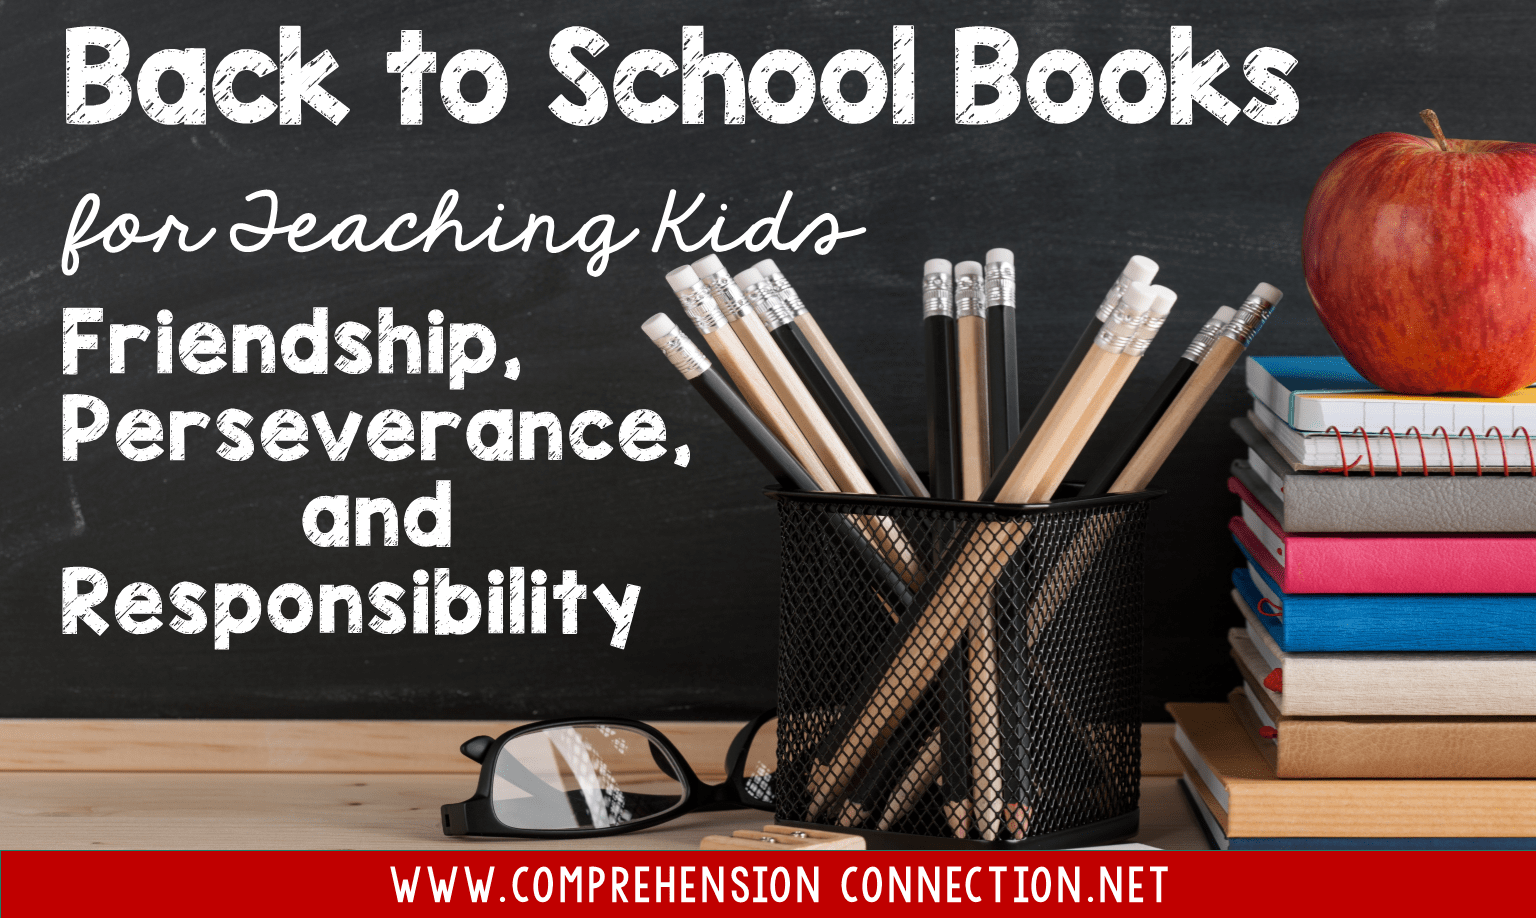 As the school year begins, it's nice to have a stash of titles you love ready to go. This post includes 10 titles for the back to school.